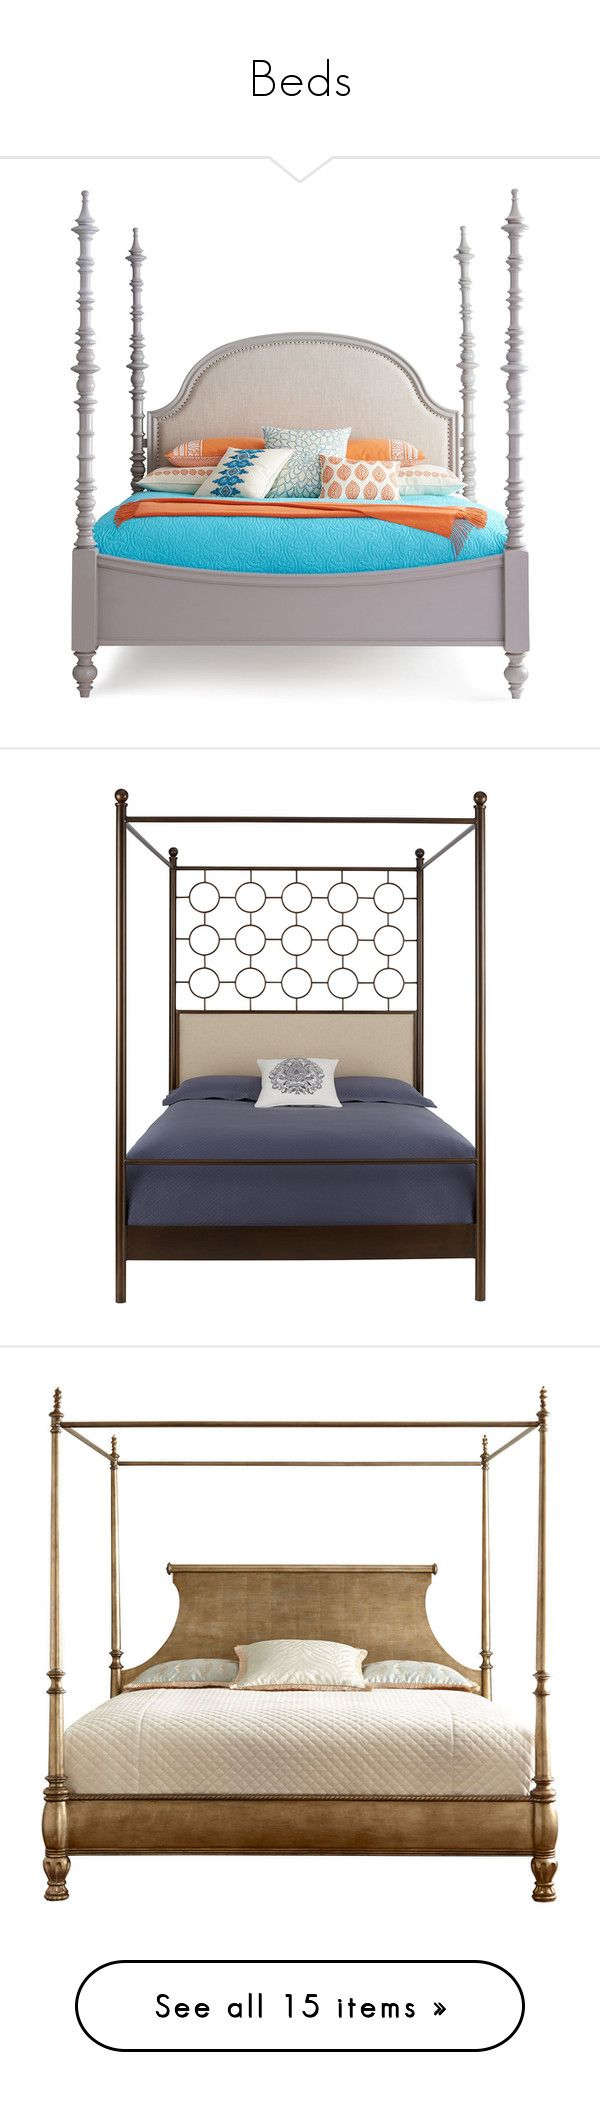 beds by caymansunshine liked on polyvore featuring home furniture beds queen canopy